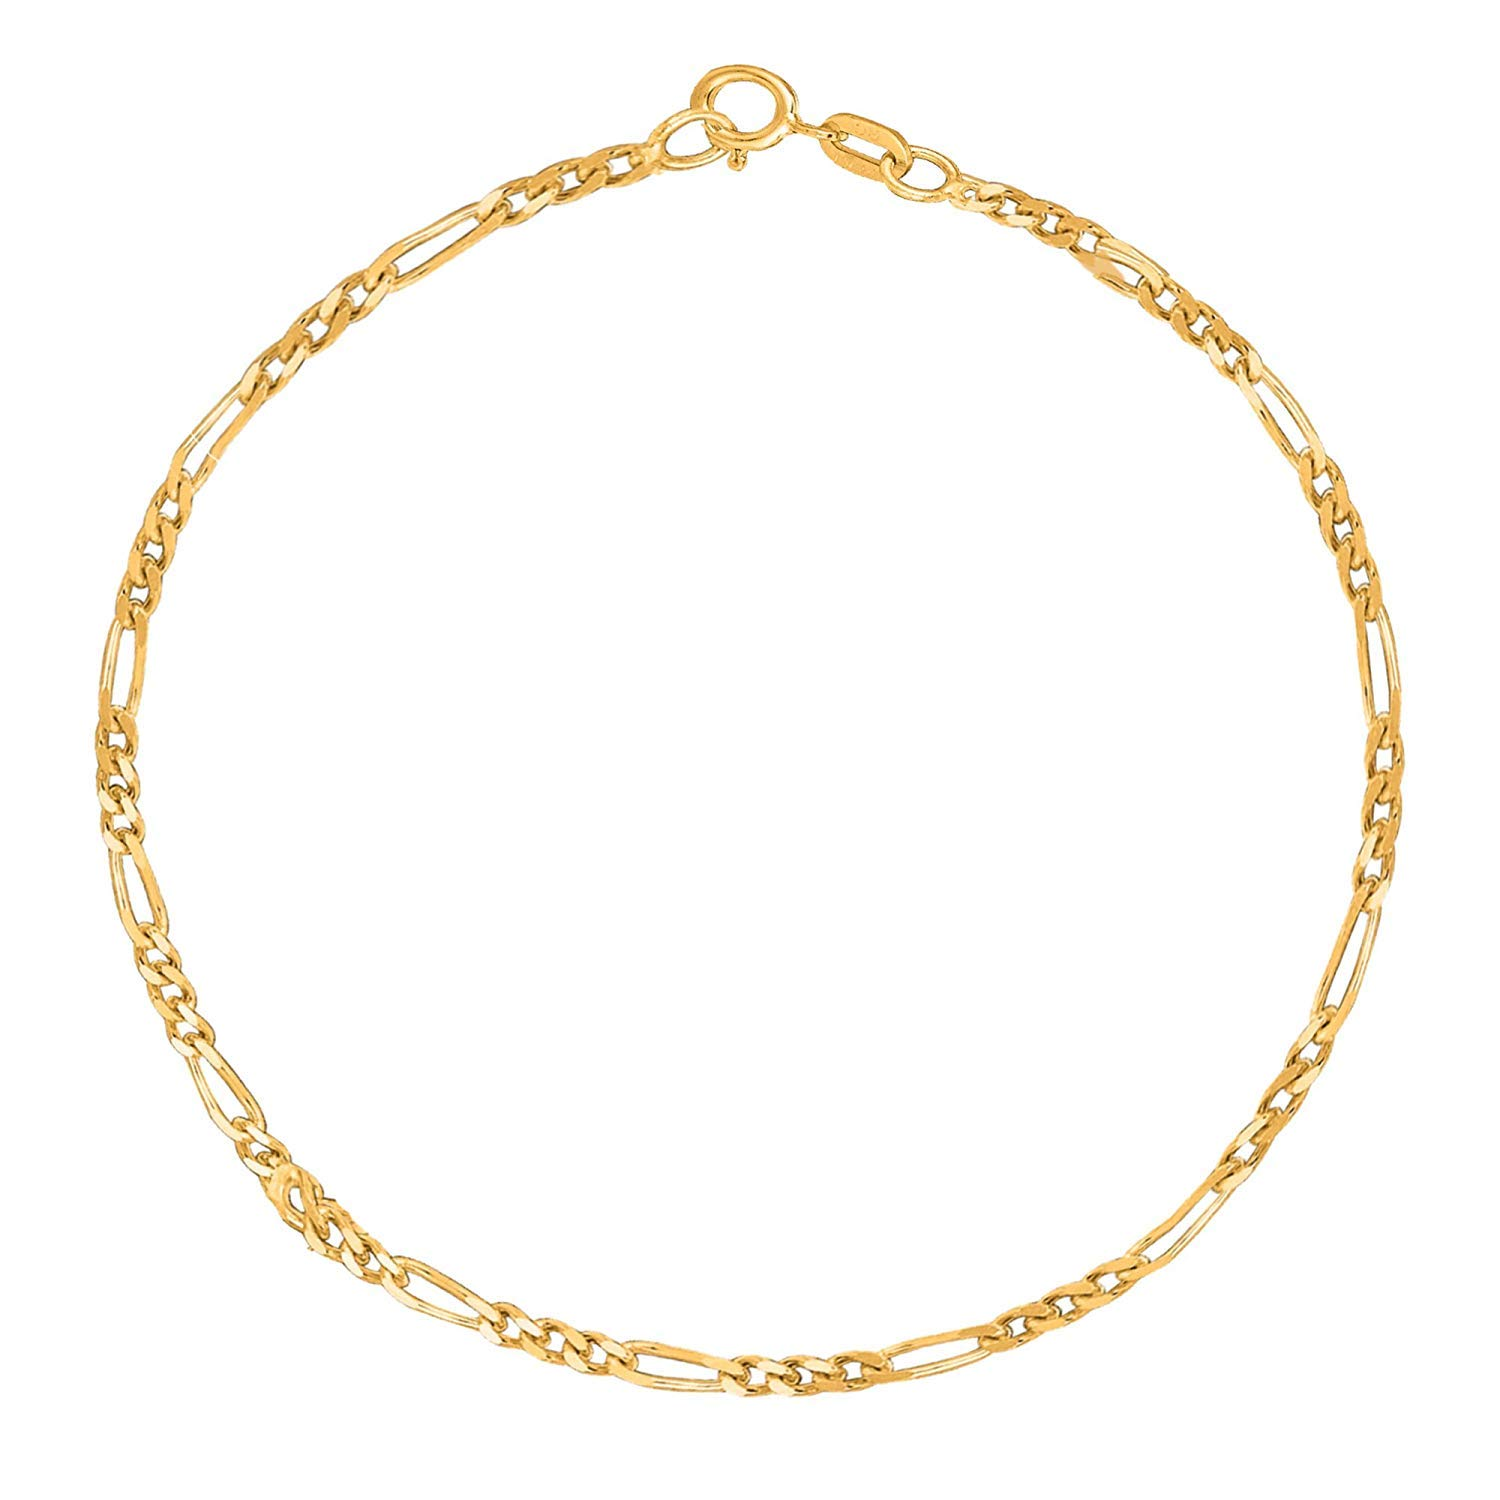 14K Yellow Or White Gold 1.9mm Diamond-Cut Alternate Classic Figaro Chain Necklace Or Bracelet/Foot Anklet for Pendants and Charms with Spring-Ring Clasp (7'', 10'', 13'', 16'', 18'', 20'' or 24 inch)